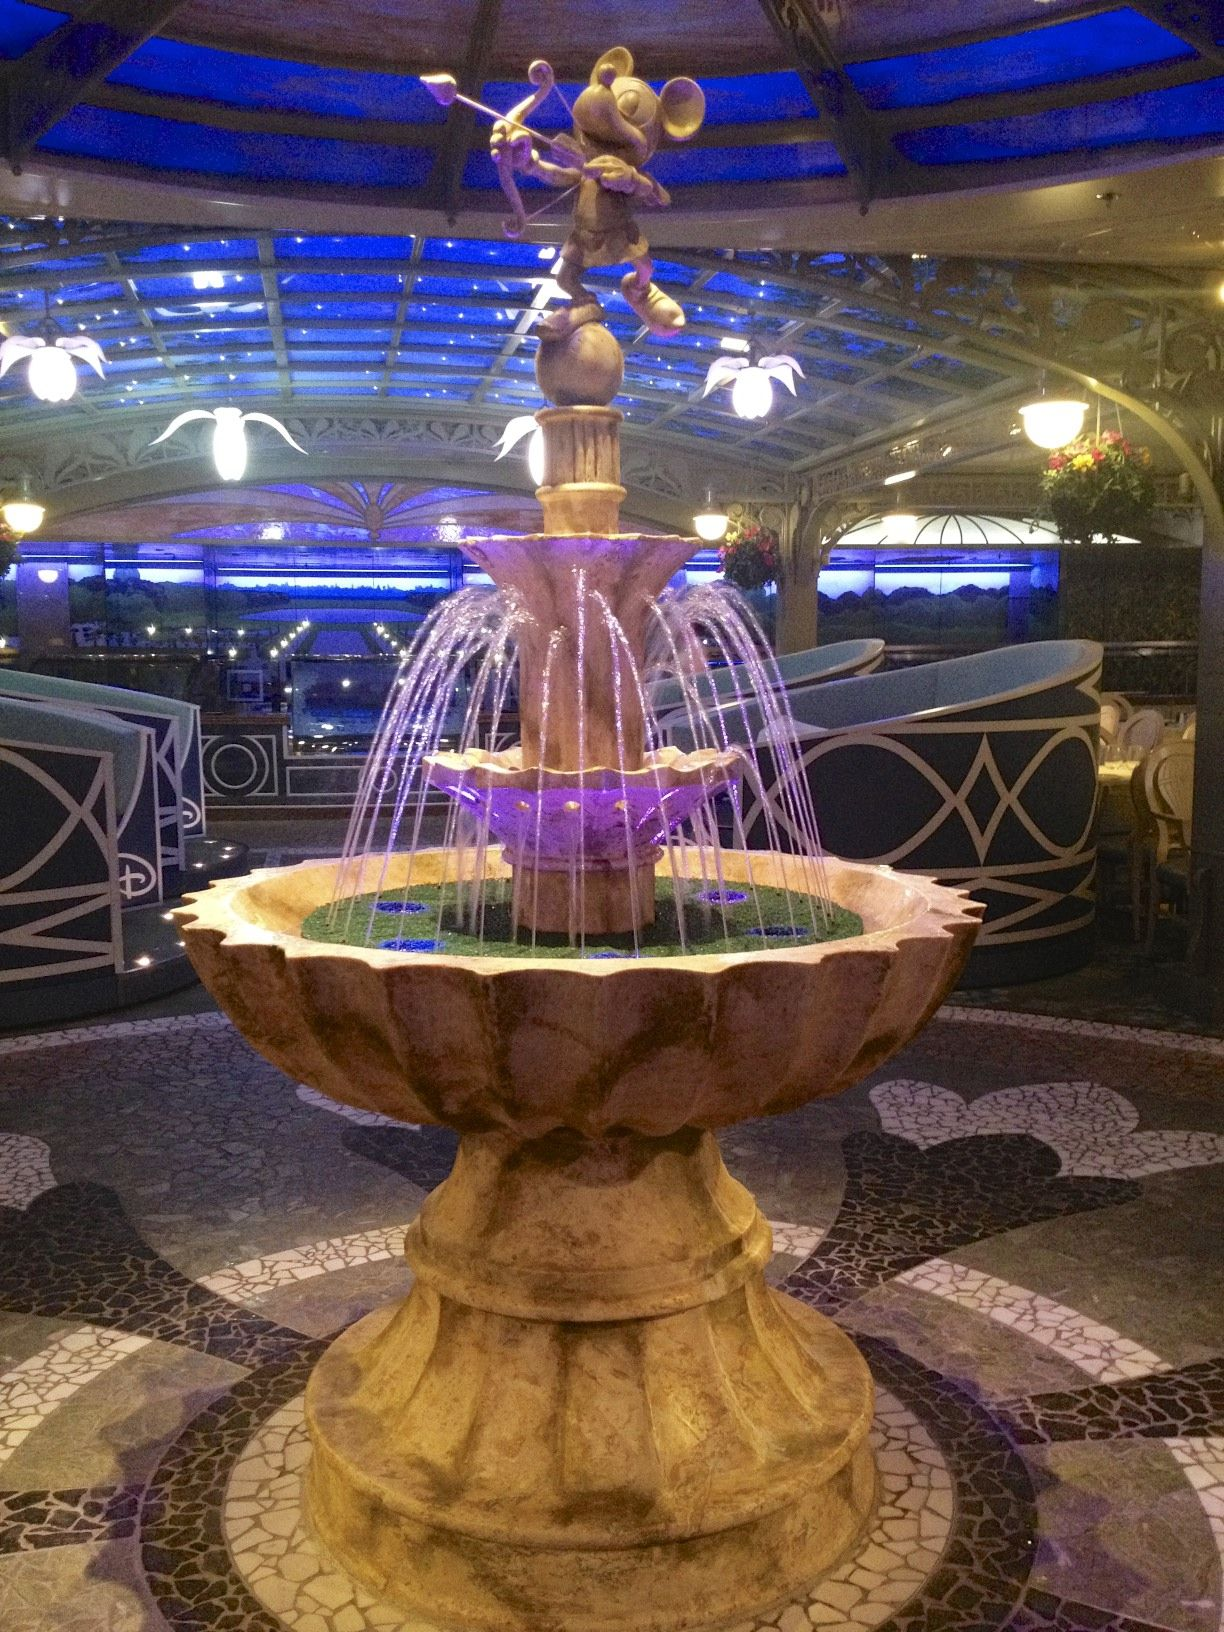 Enchanted Garden restaurant aboard the Disney Dream cruise